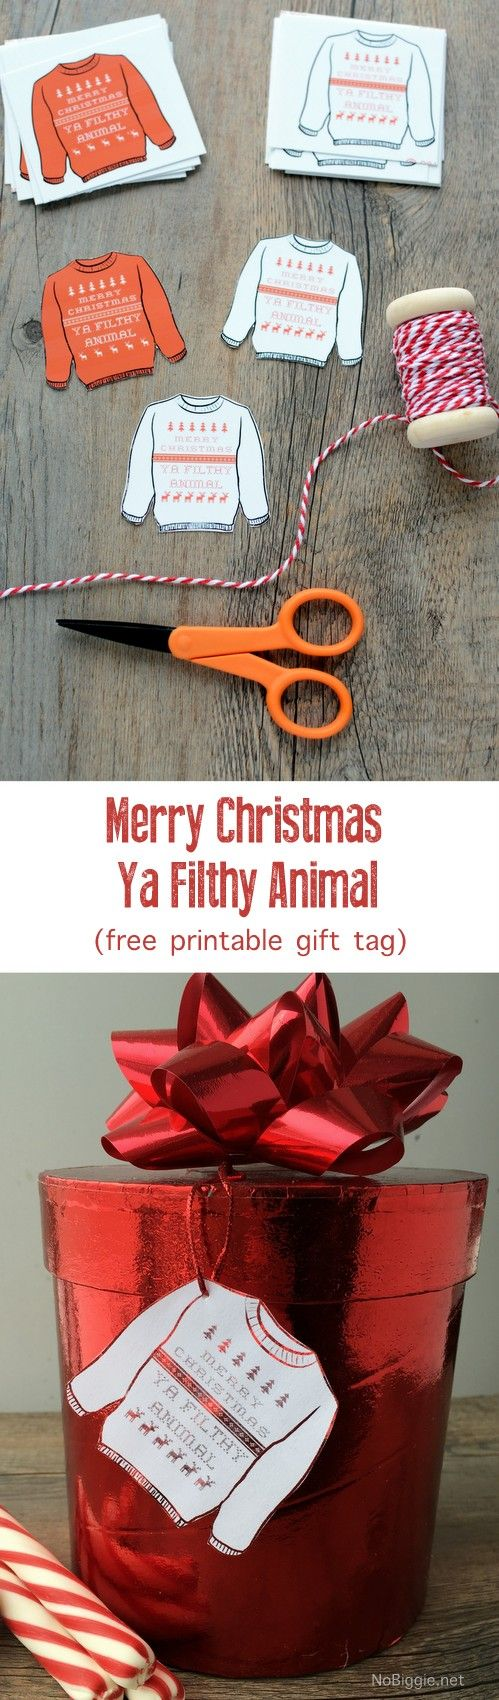 Merry Christmas Ya Filthy Animal (free printable gift tags)   NoBiggie.net Get in the holiday spirit with HOME ALONE, download your copy today! #FoxChristmas #ad